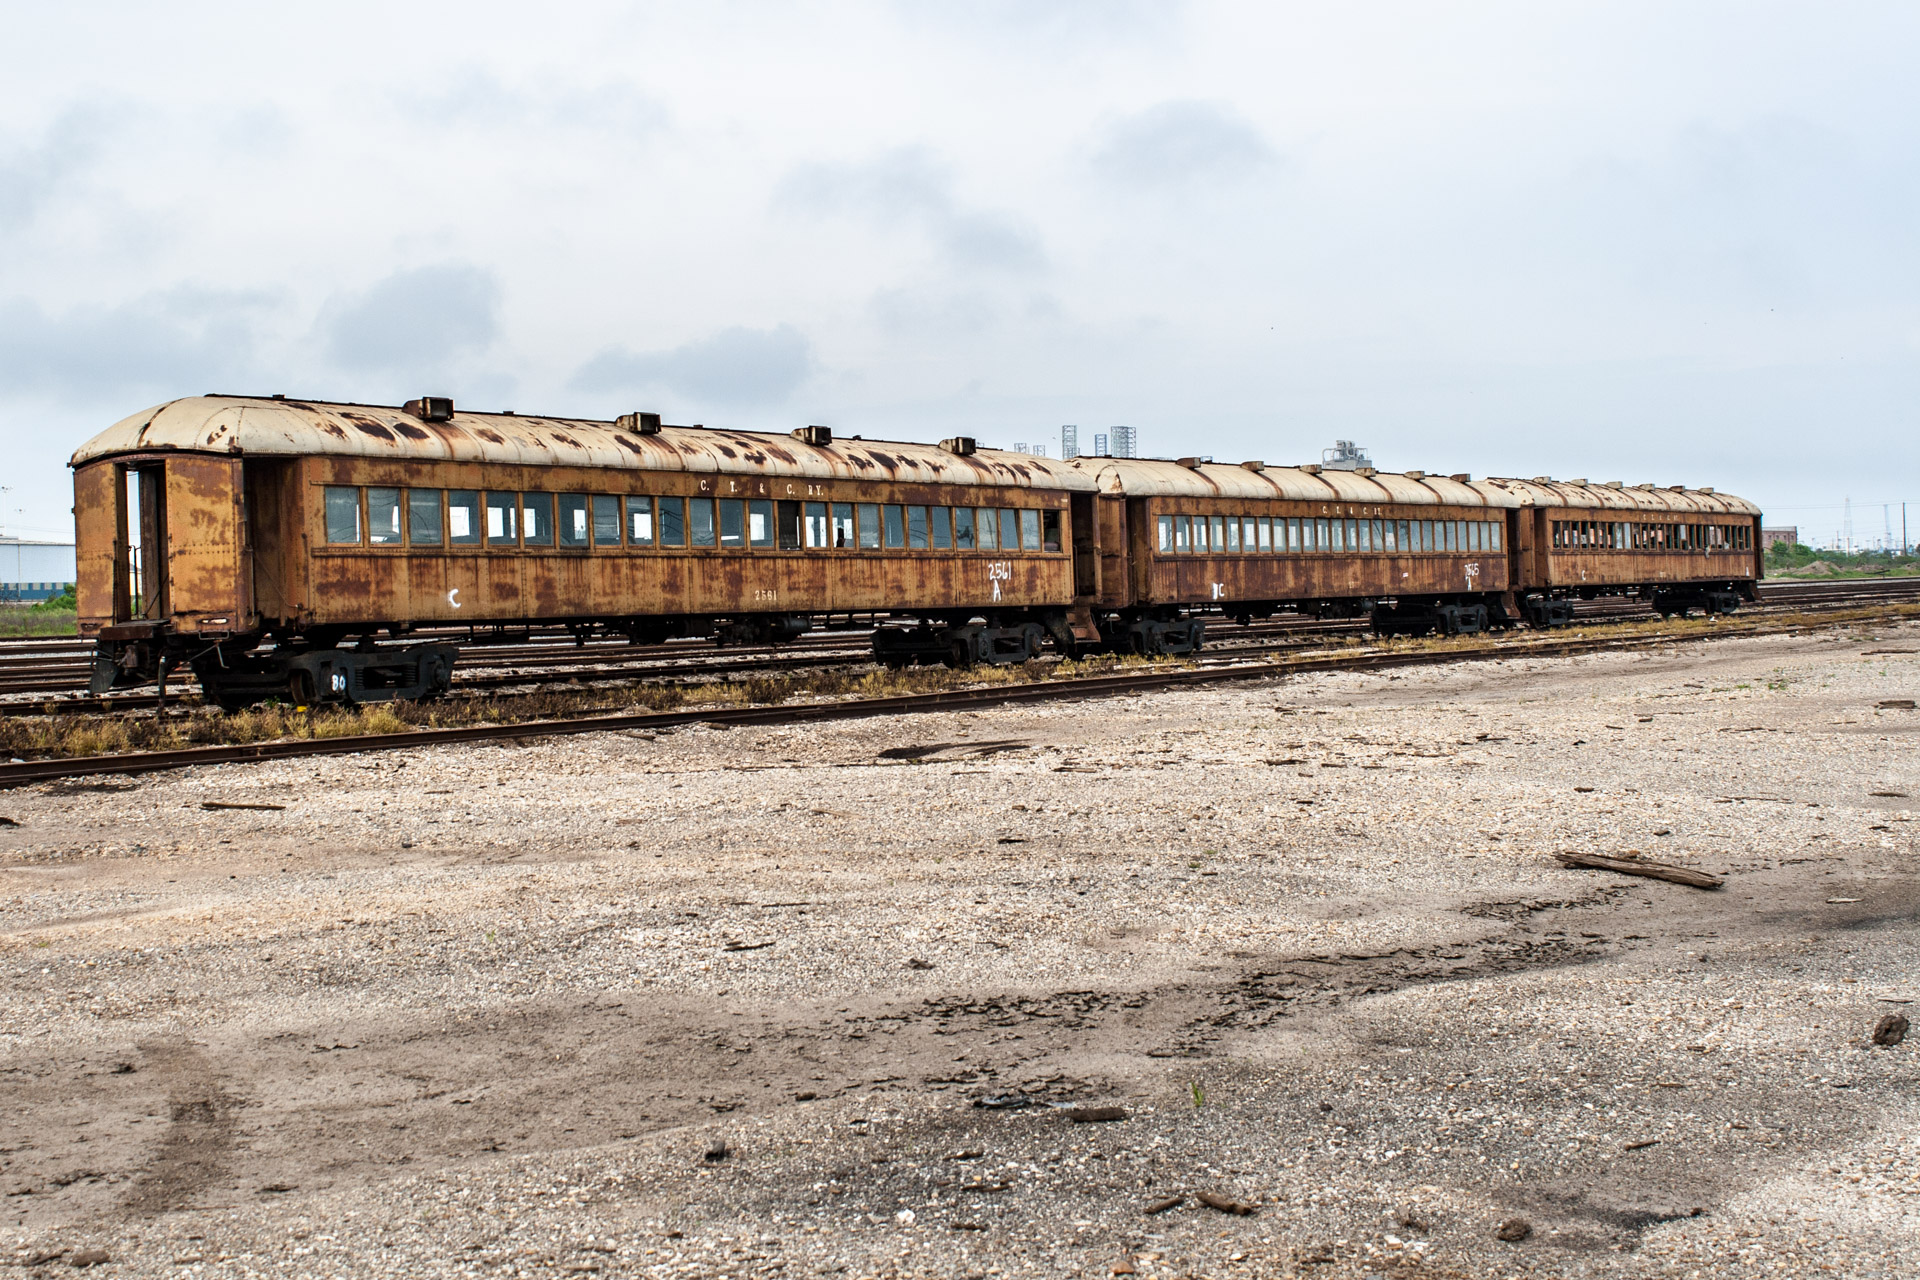 Galveston, Texas - Last Stop Passenger Train Car (side full)